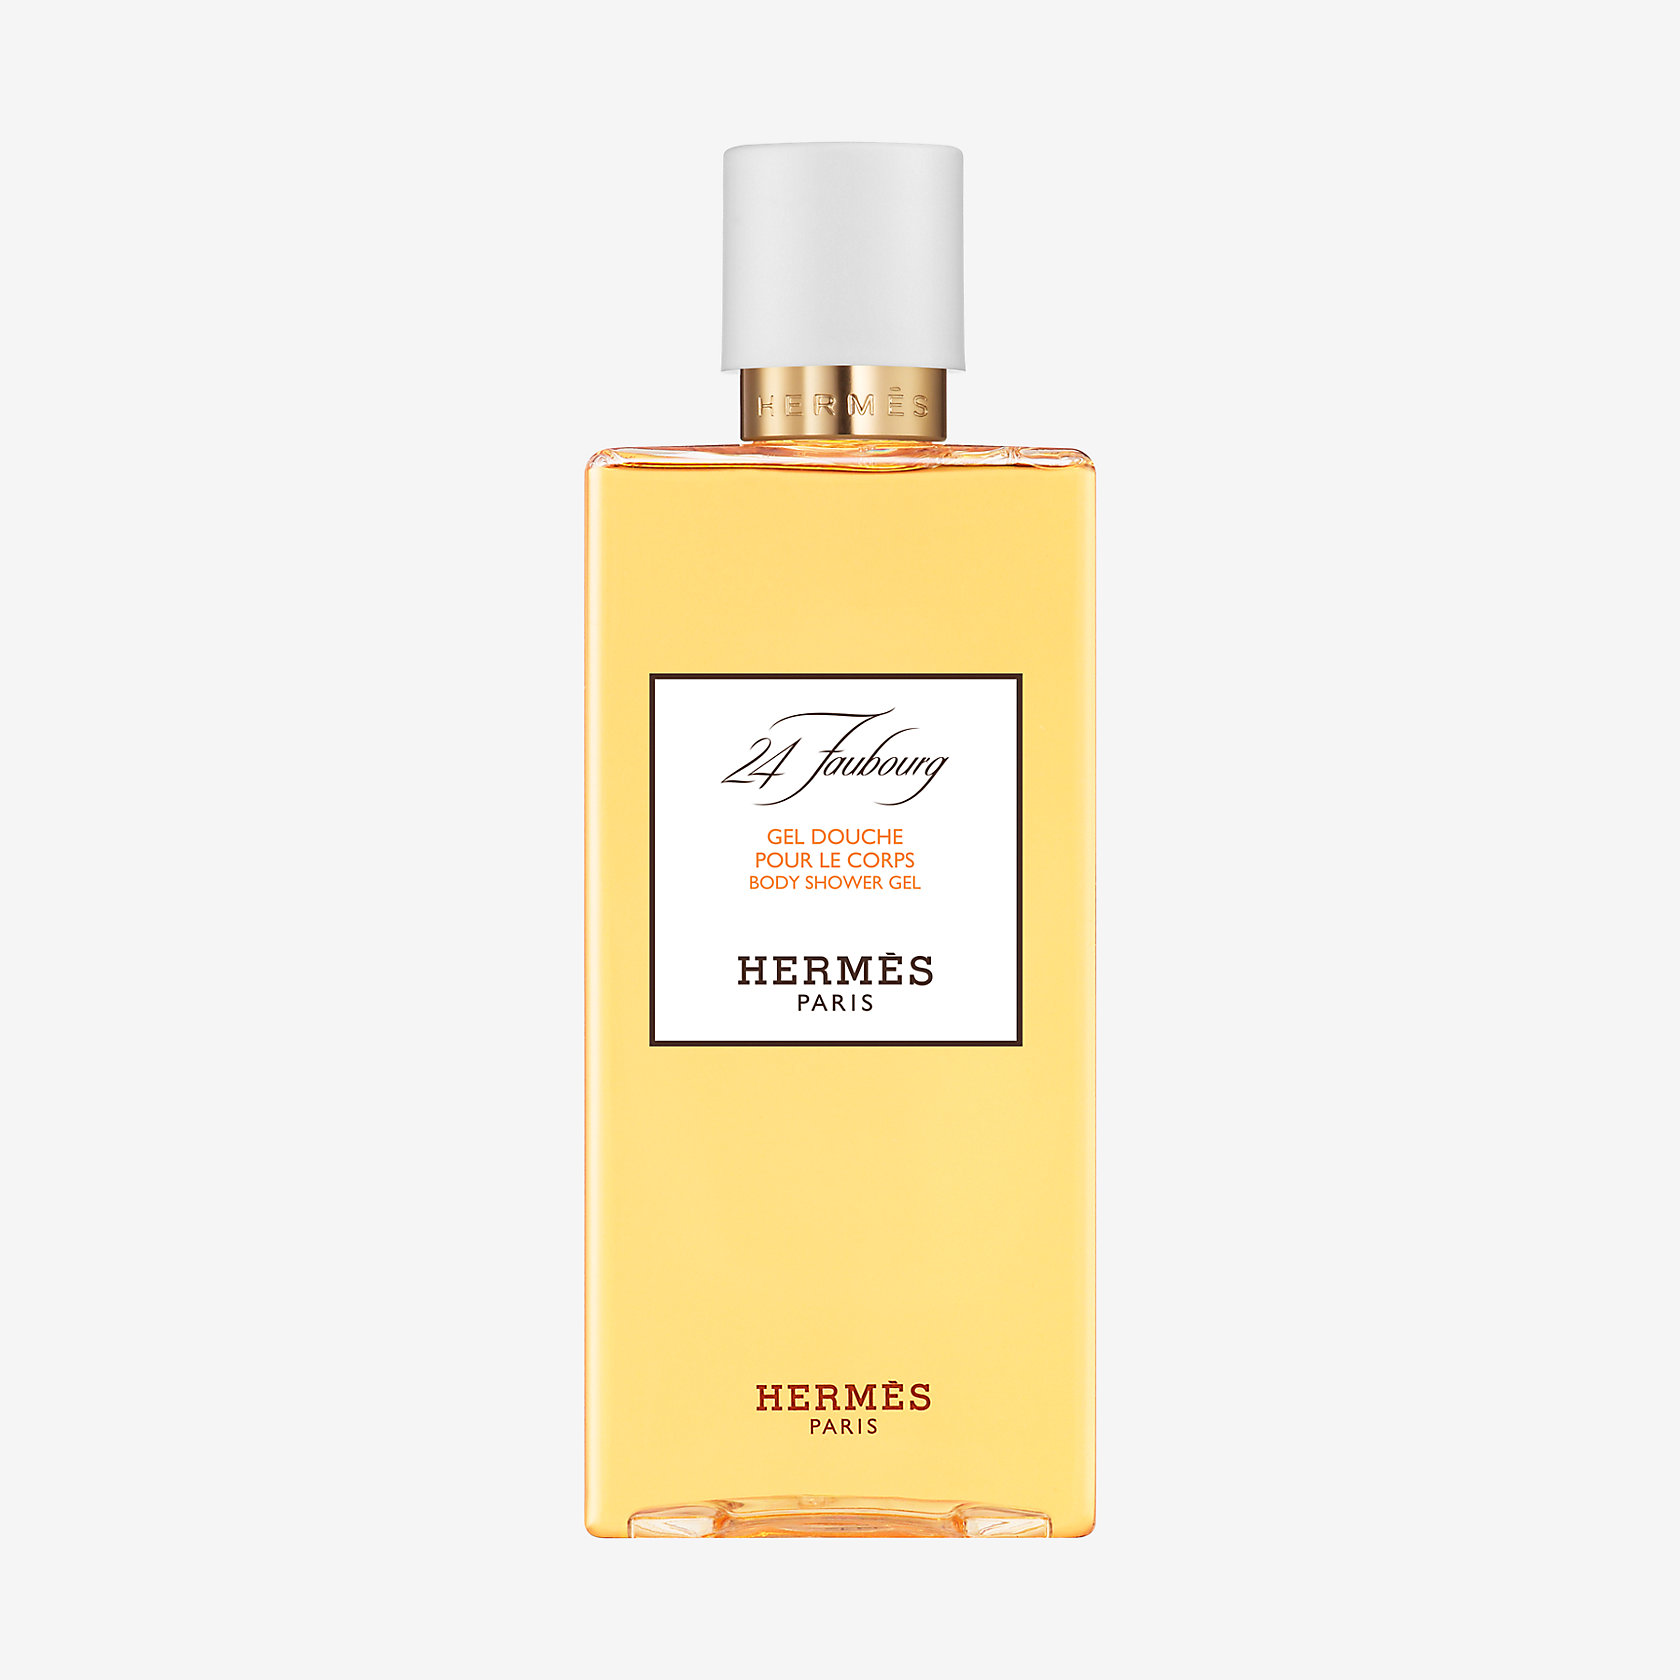 24 Faubourg Perfumed Bath And Shower Gel Herms Hermes Woman Edp 100 Ml